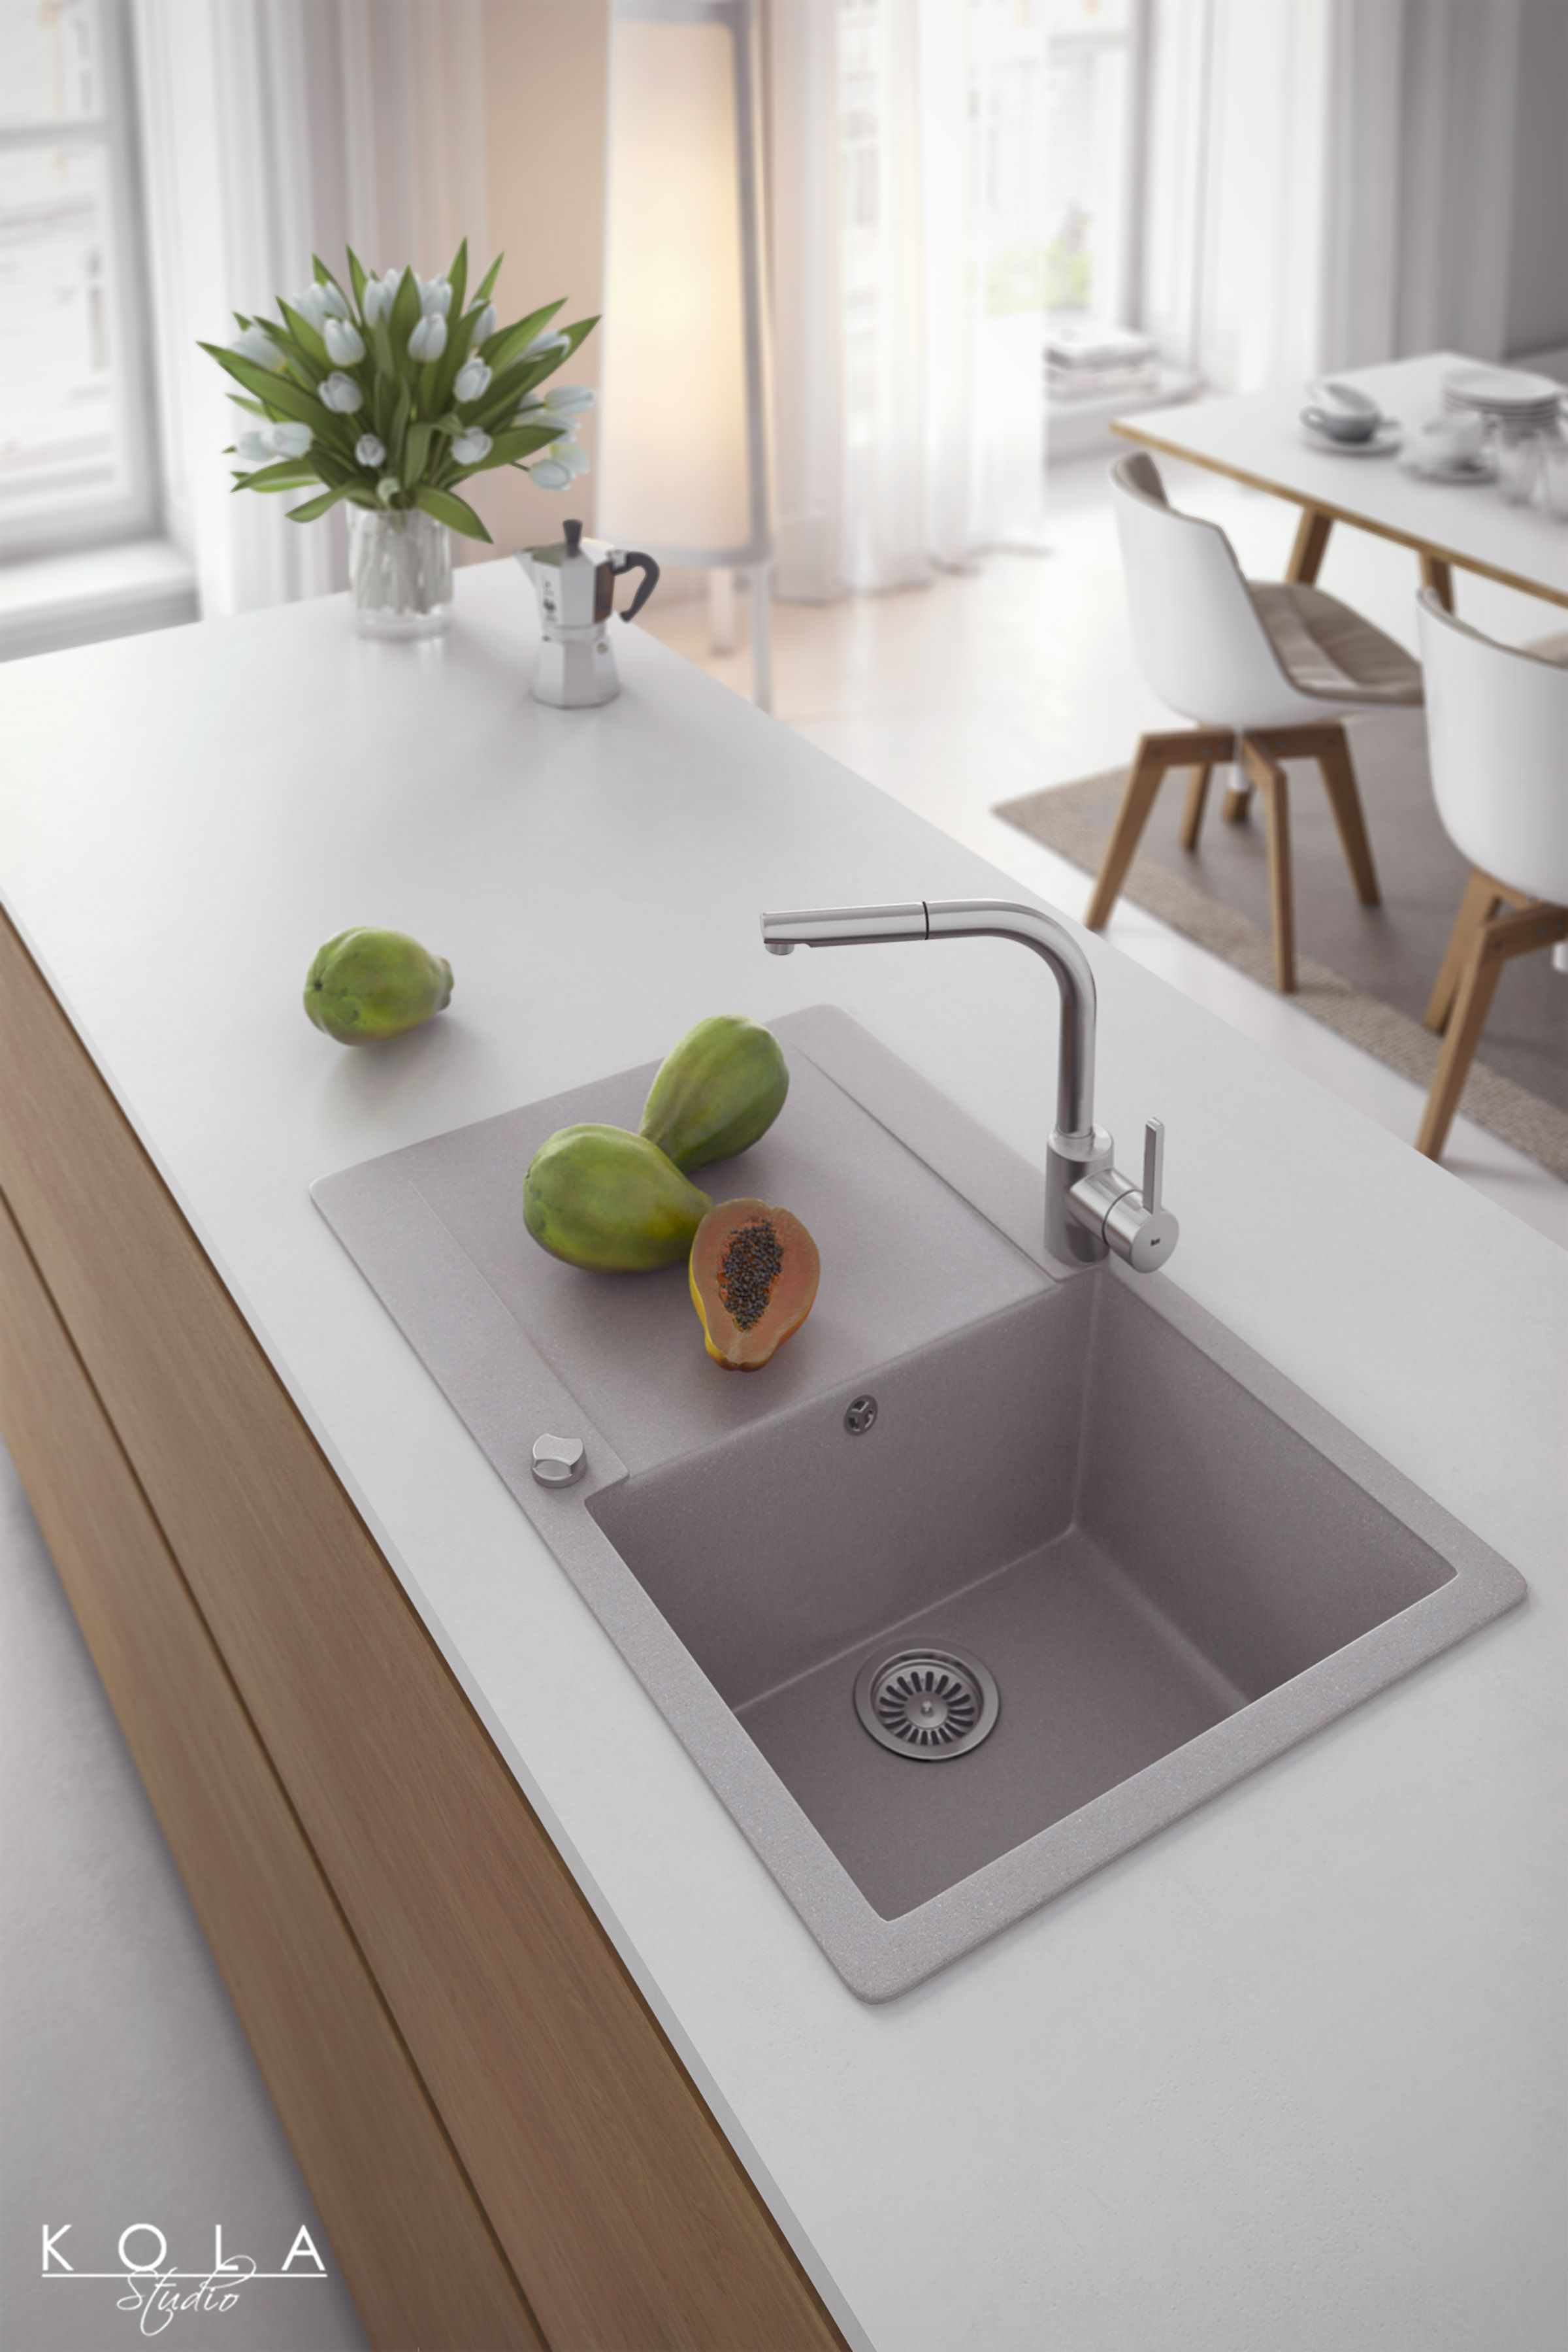 Kitchen Chrome Faucets And Quartz Sinks From New Teka Collection